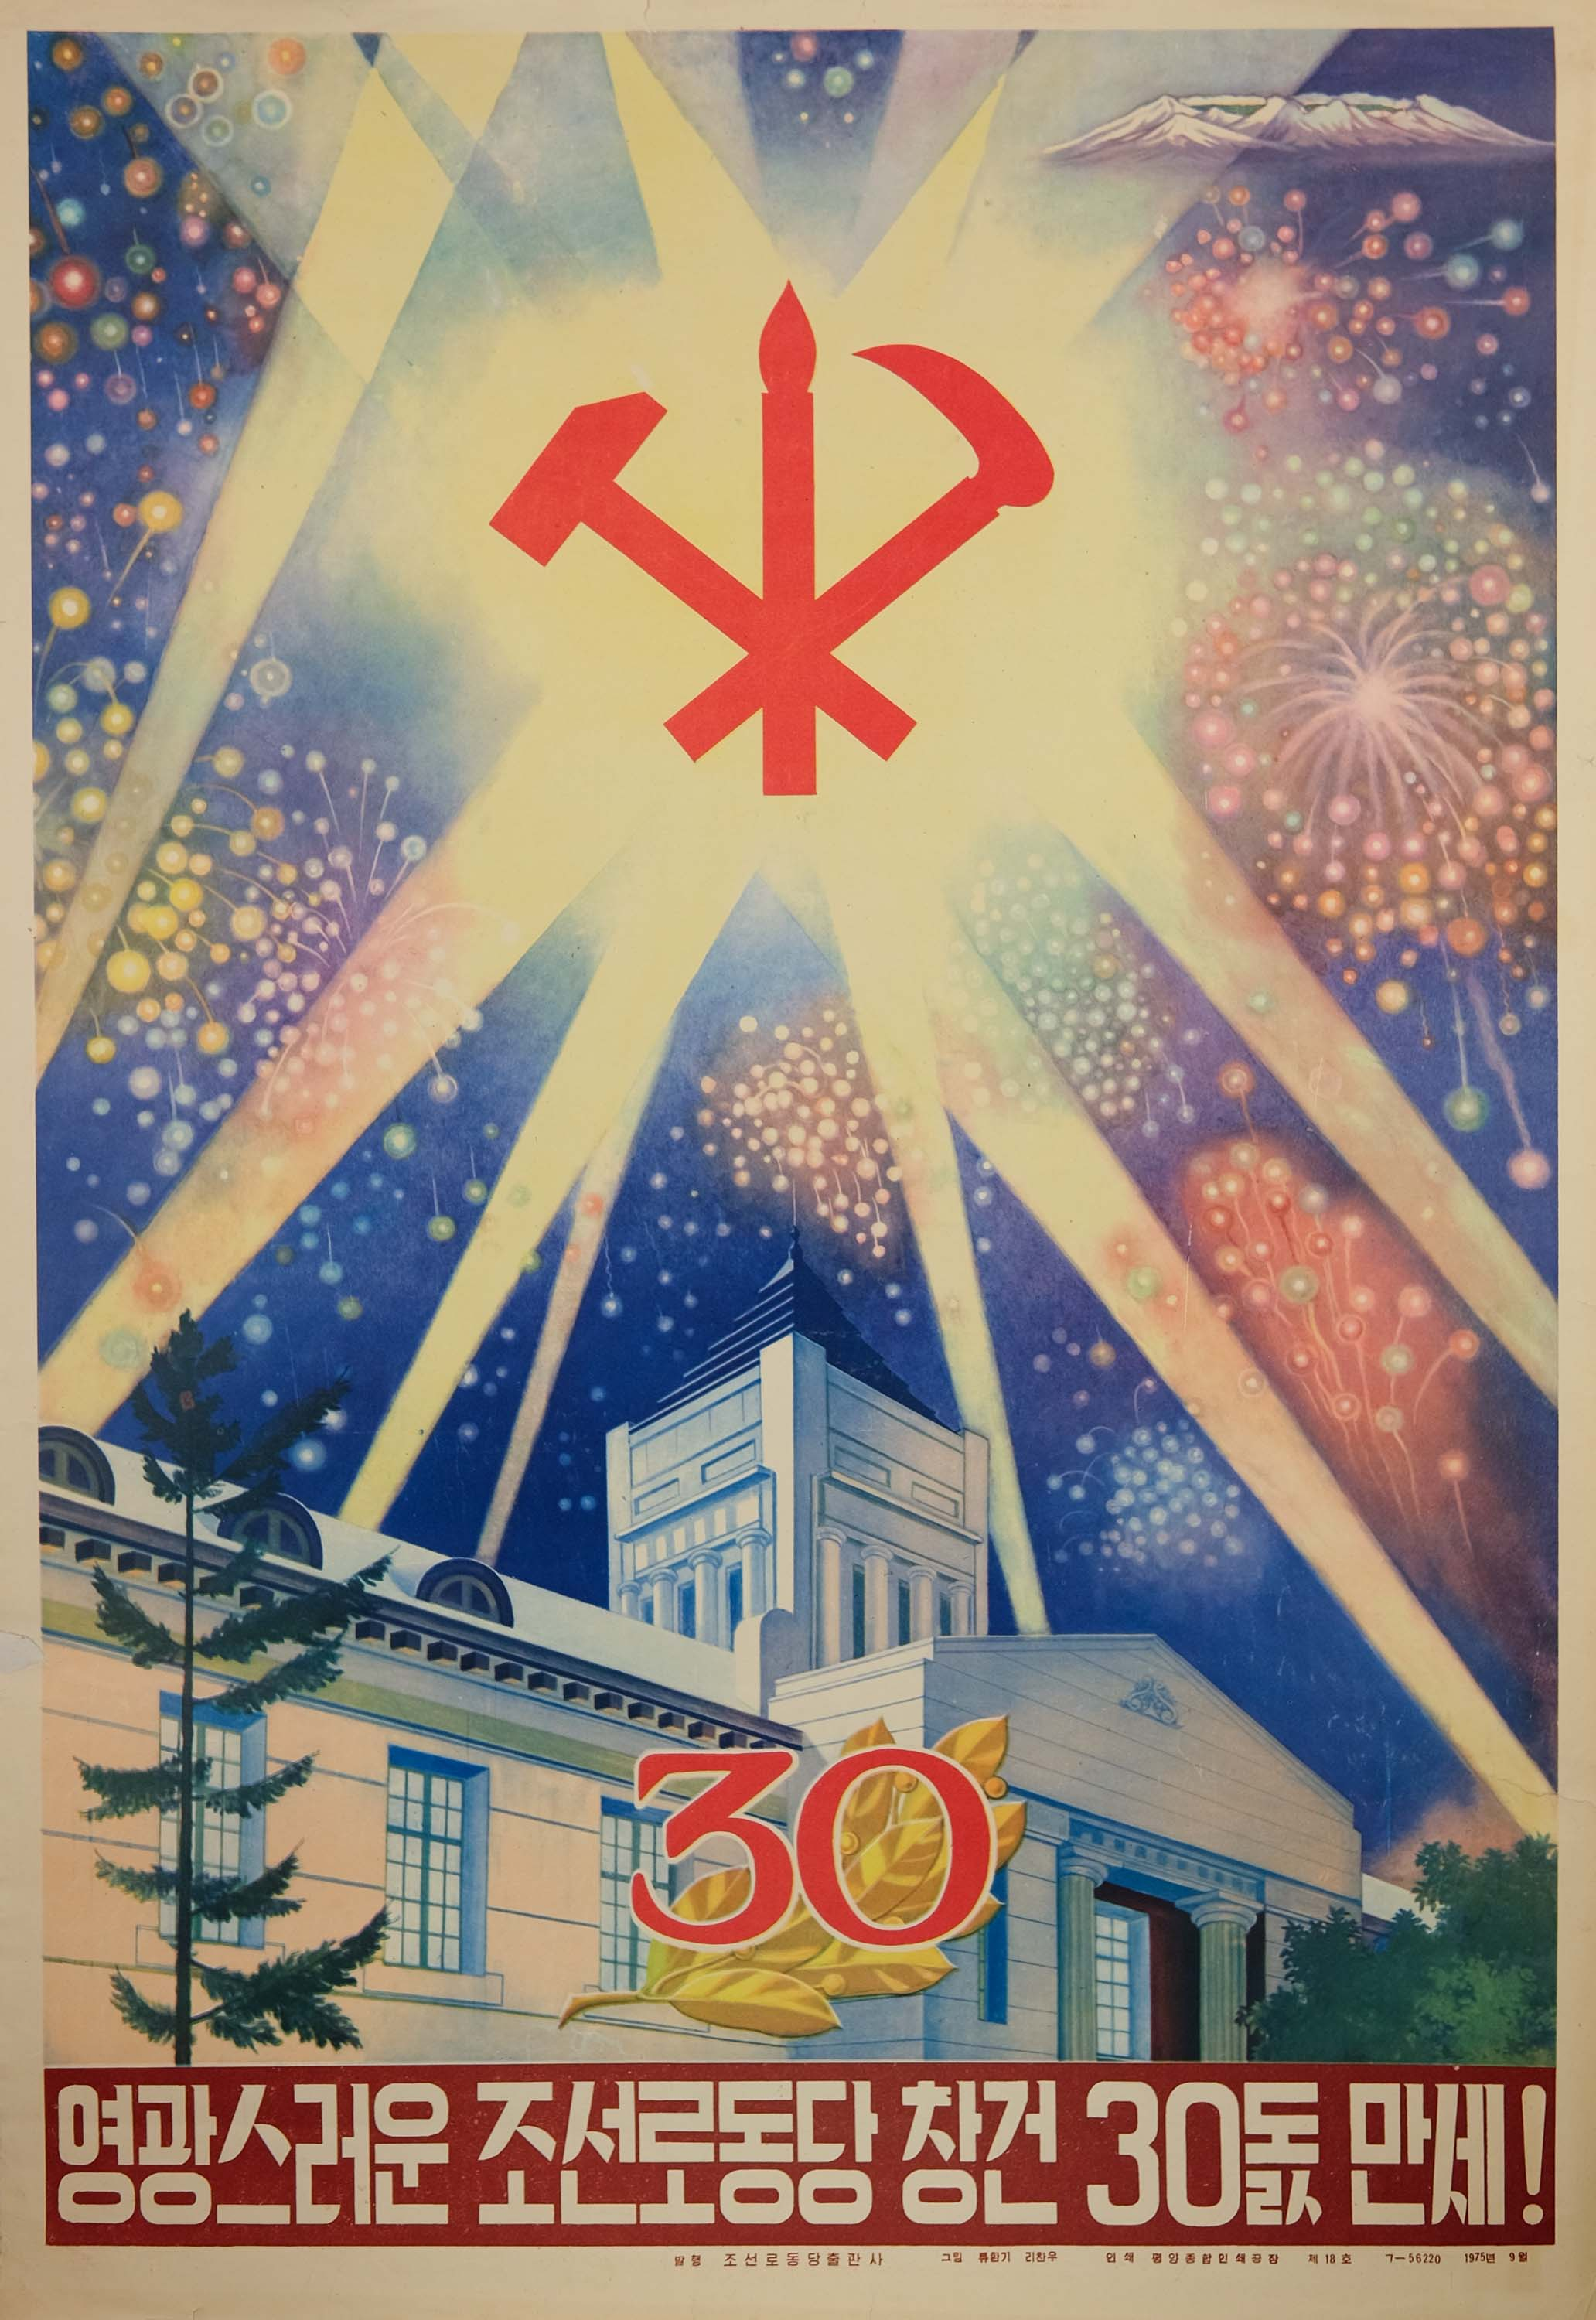 image of 1975 vintage original North Korean communist propaganda poster titled The glorious 30th anniversary of the Labour Party of the DPRK!